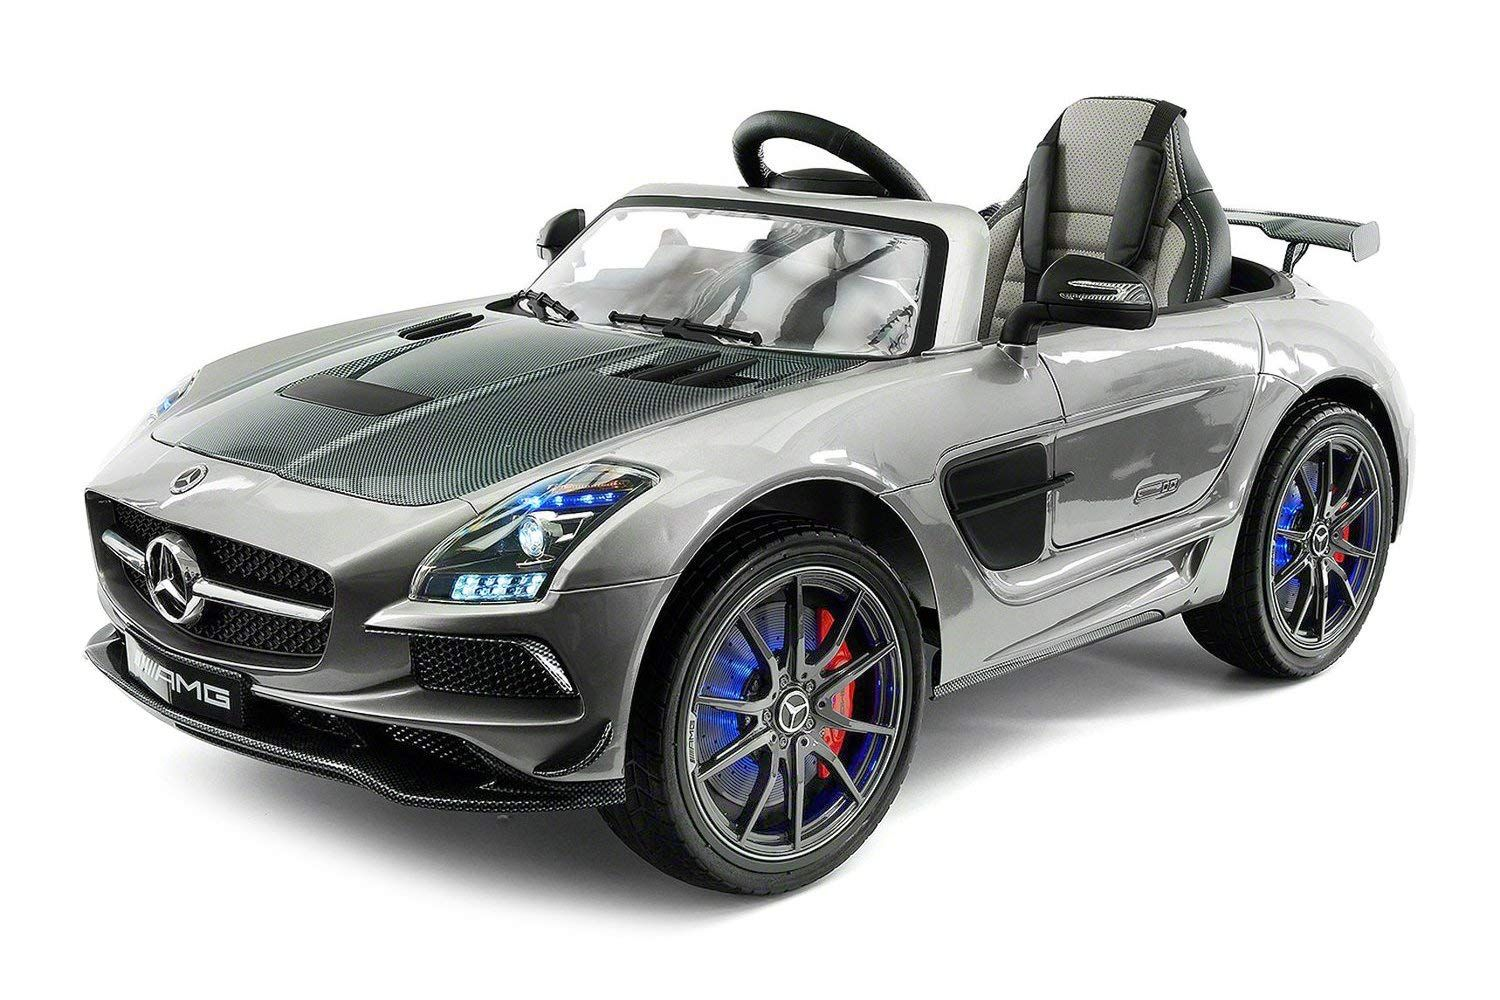 Top 5 Best Two Seater Power Wheels – Ultimate Buying Guide 2021